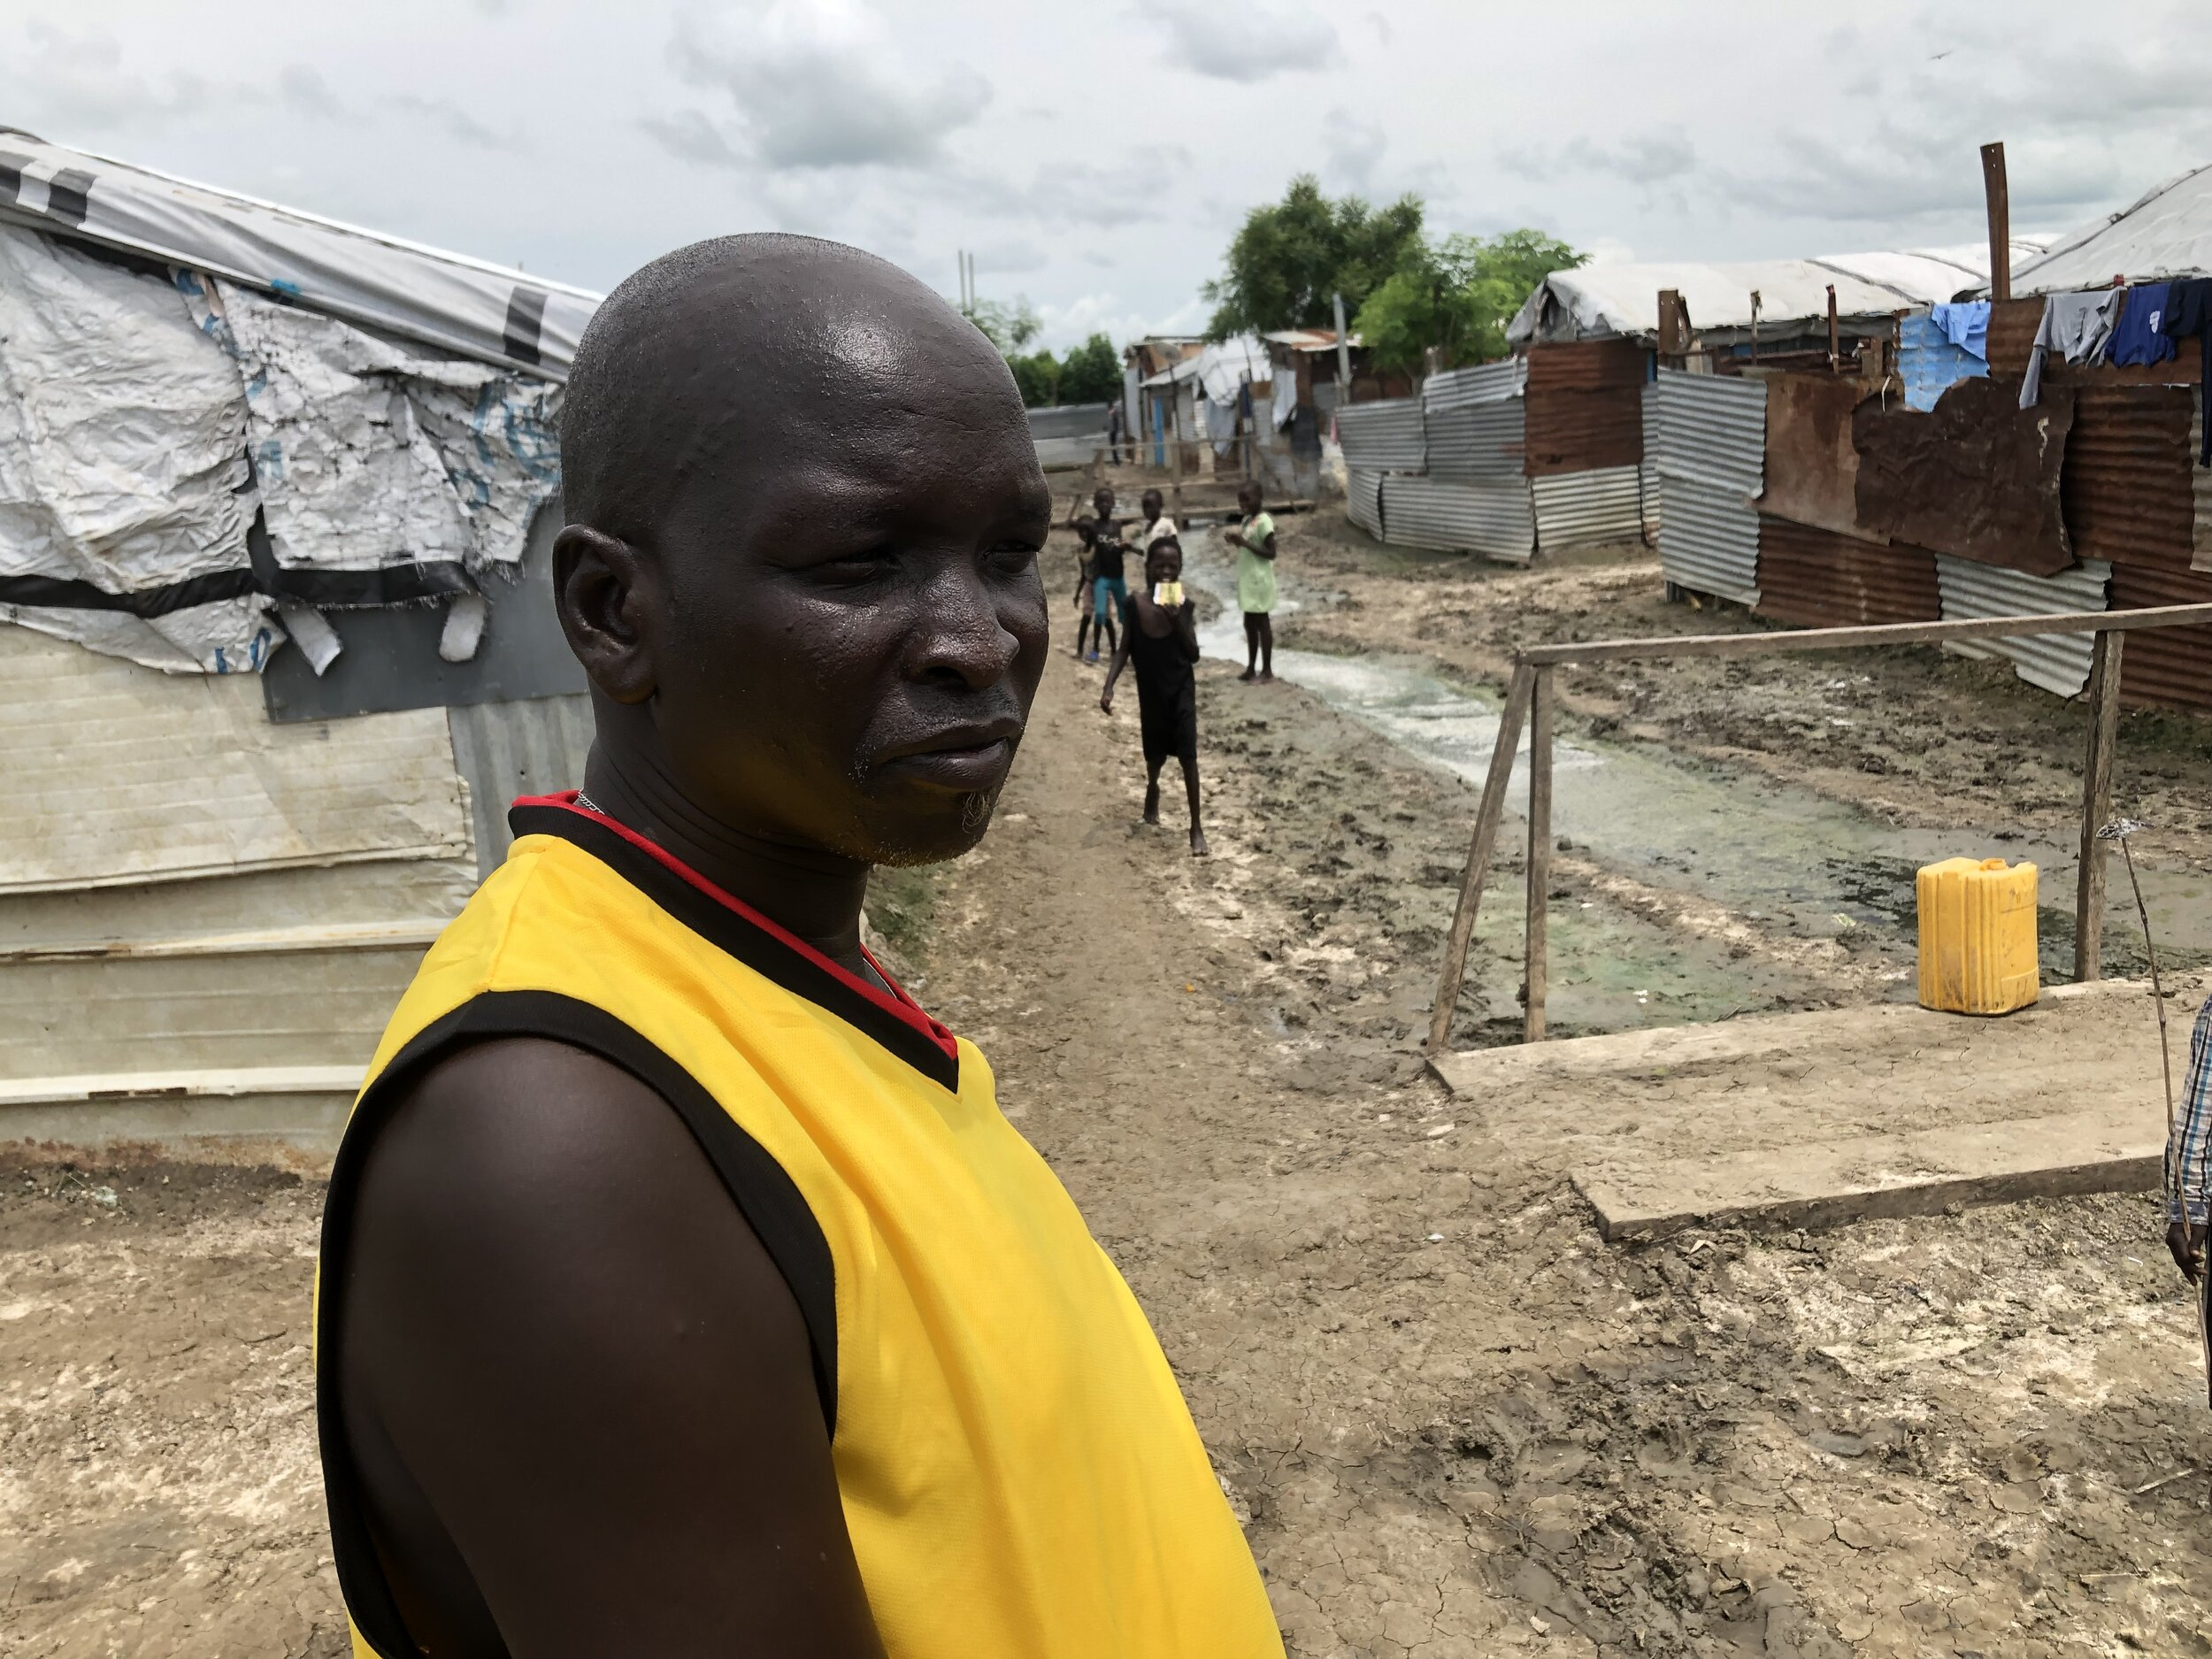 John used to work for an NGO within the Malakal POC, but he no longer has a job.